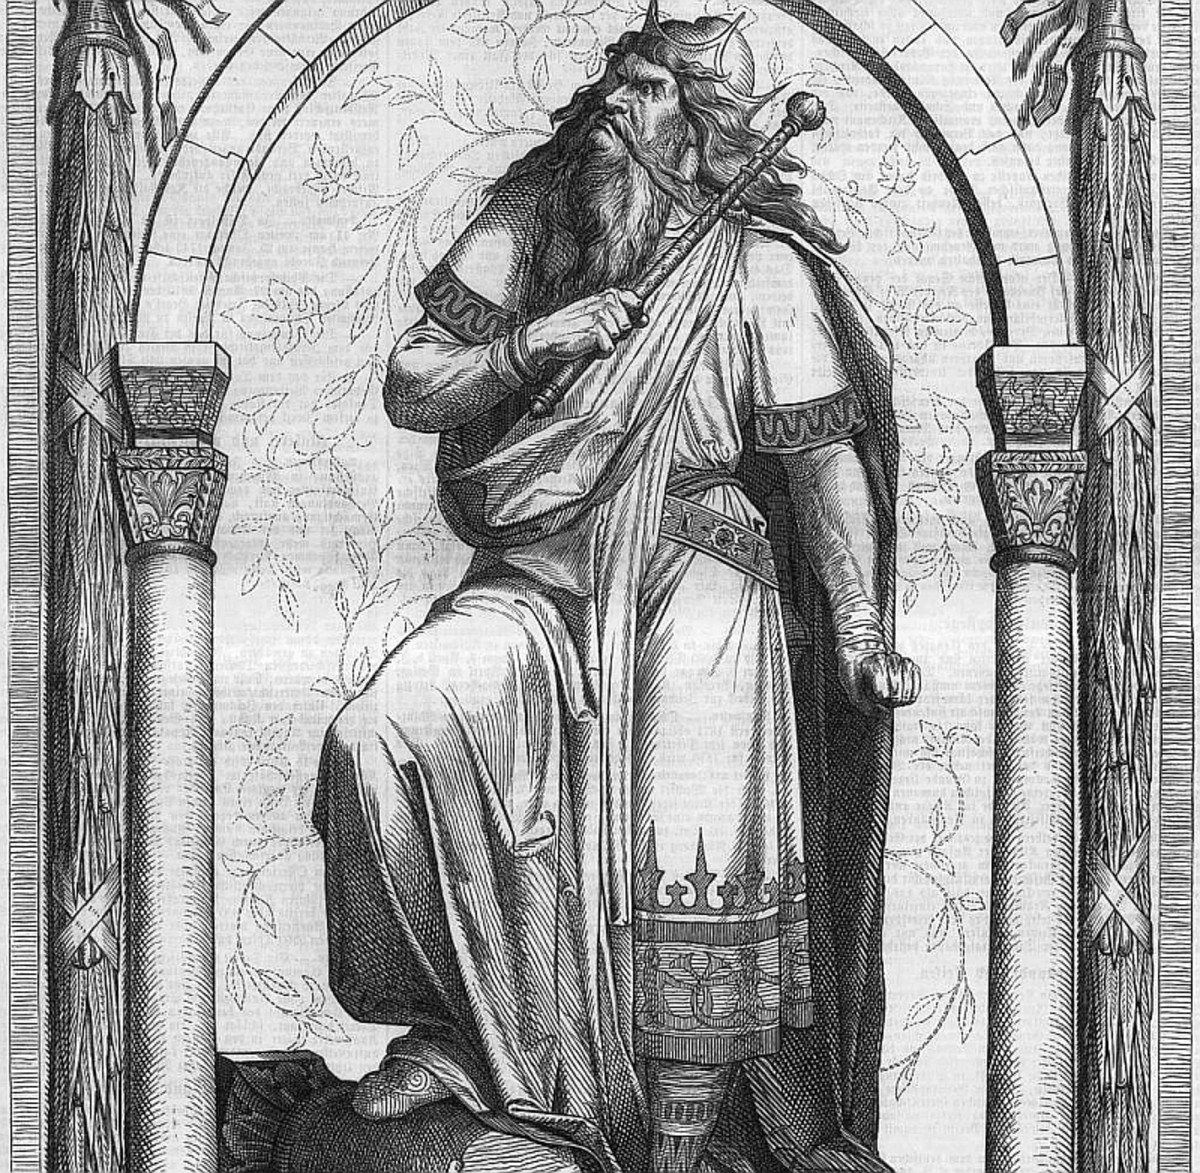 Fresco depicting Genseric the Vandal, painted 1869.